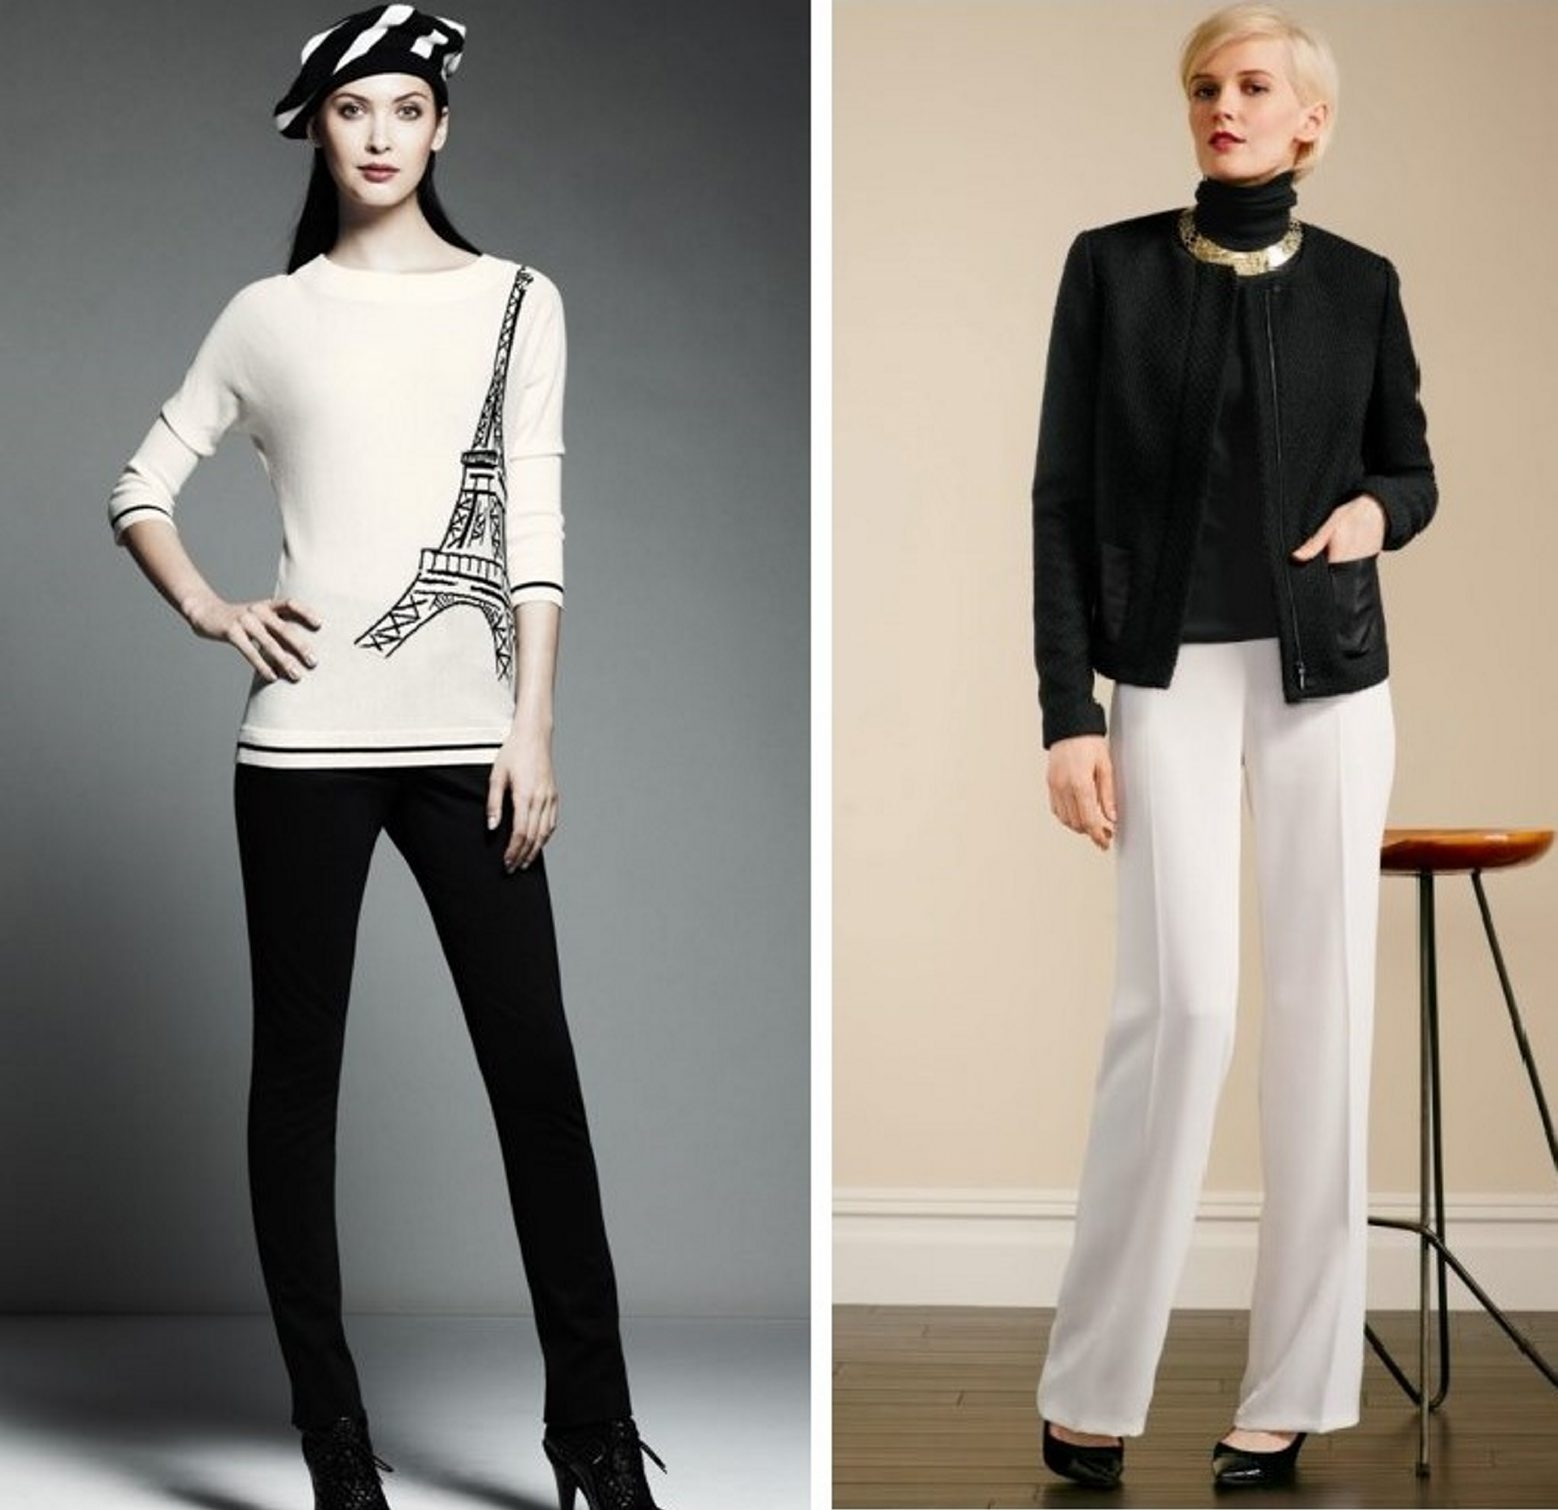 Two black and white looks for fall from Catherine Malandrino for DesigNation coming to Kohl's, left, and from Talbots.